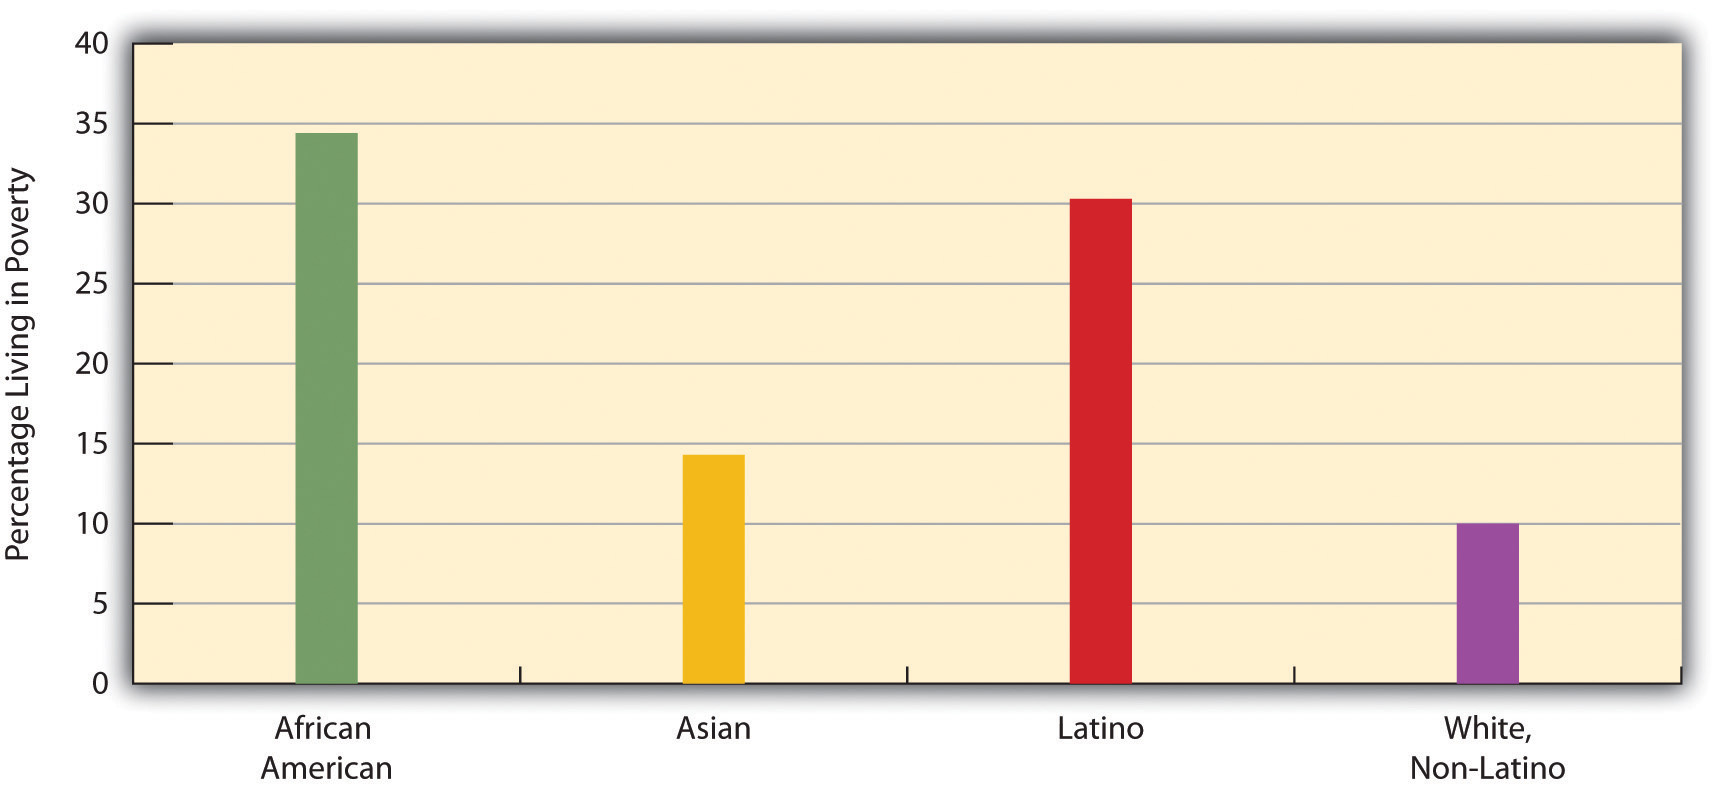 Race, Ethnicity, and Percentage of Children Below Poverty Level, 2008